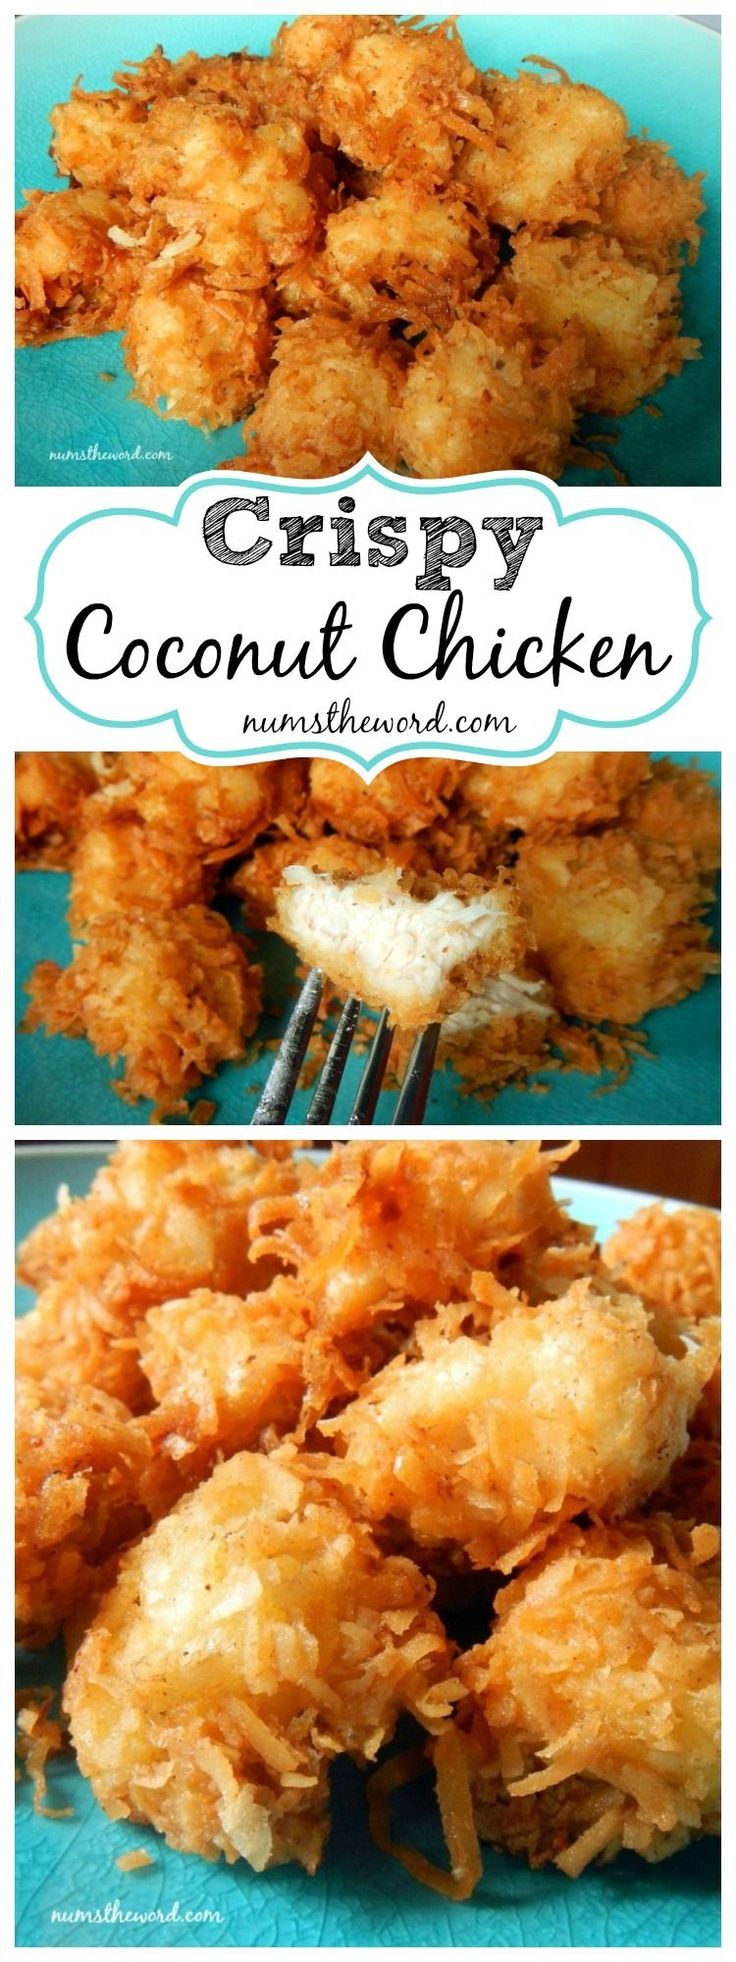 Crispy Coconut Chicken